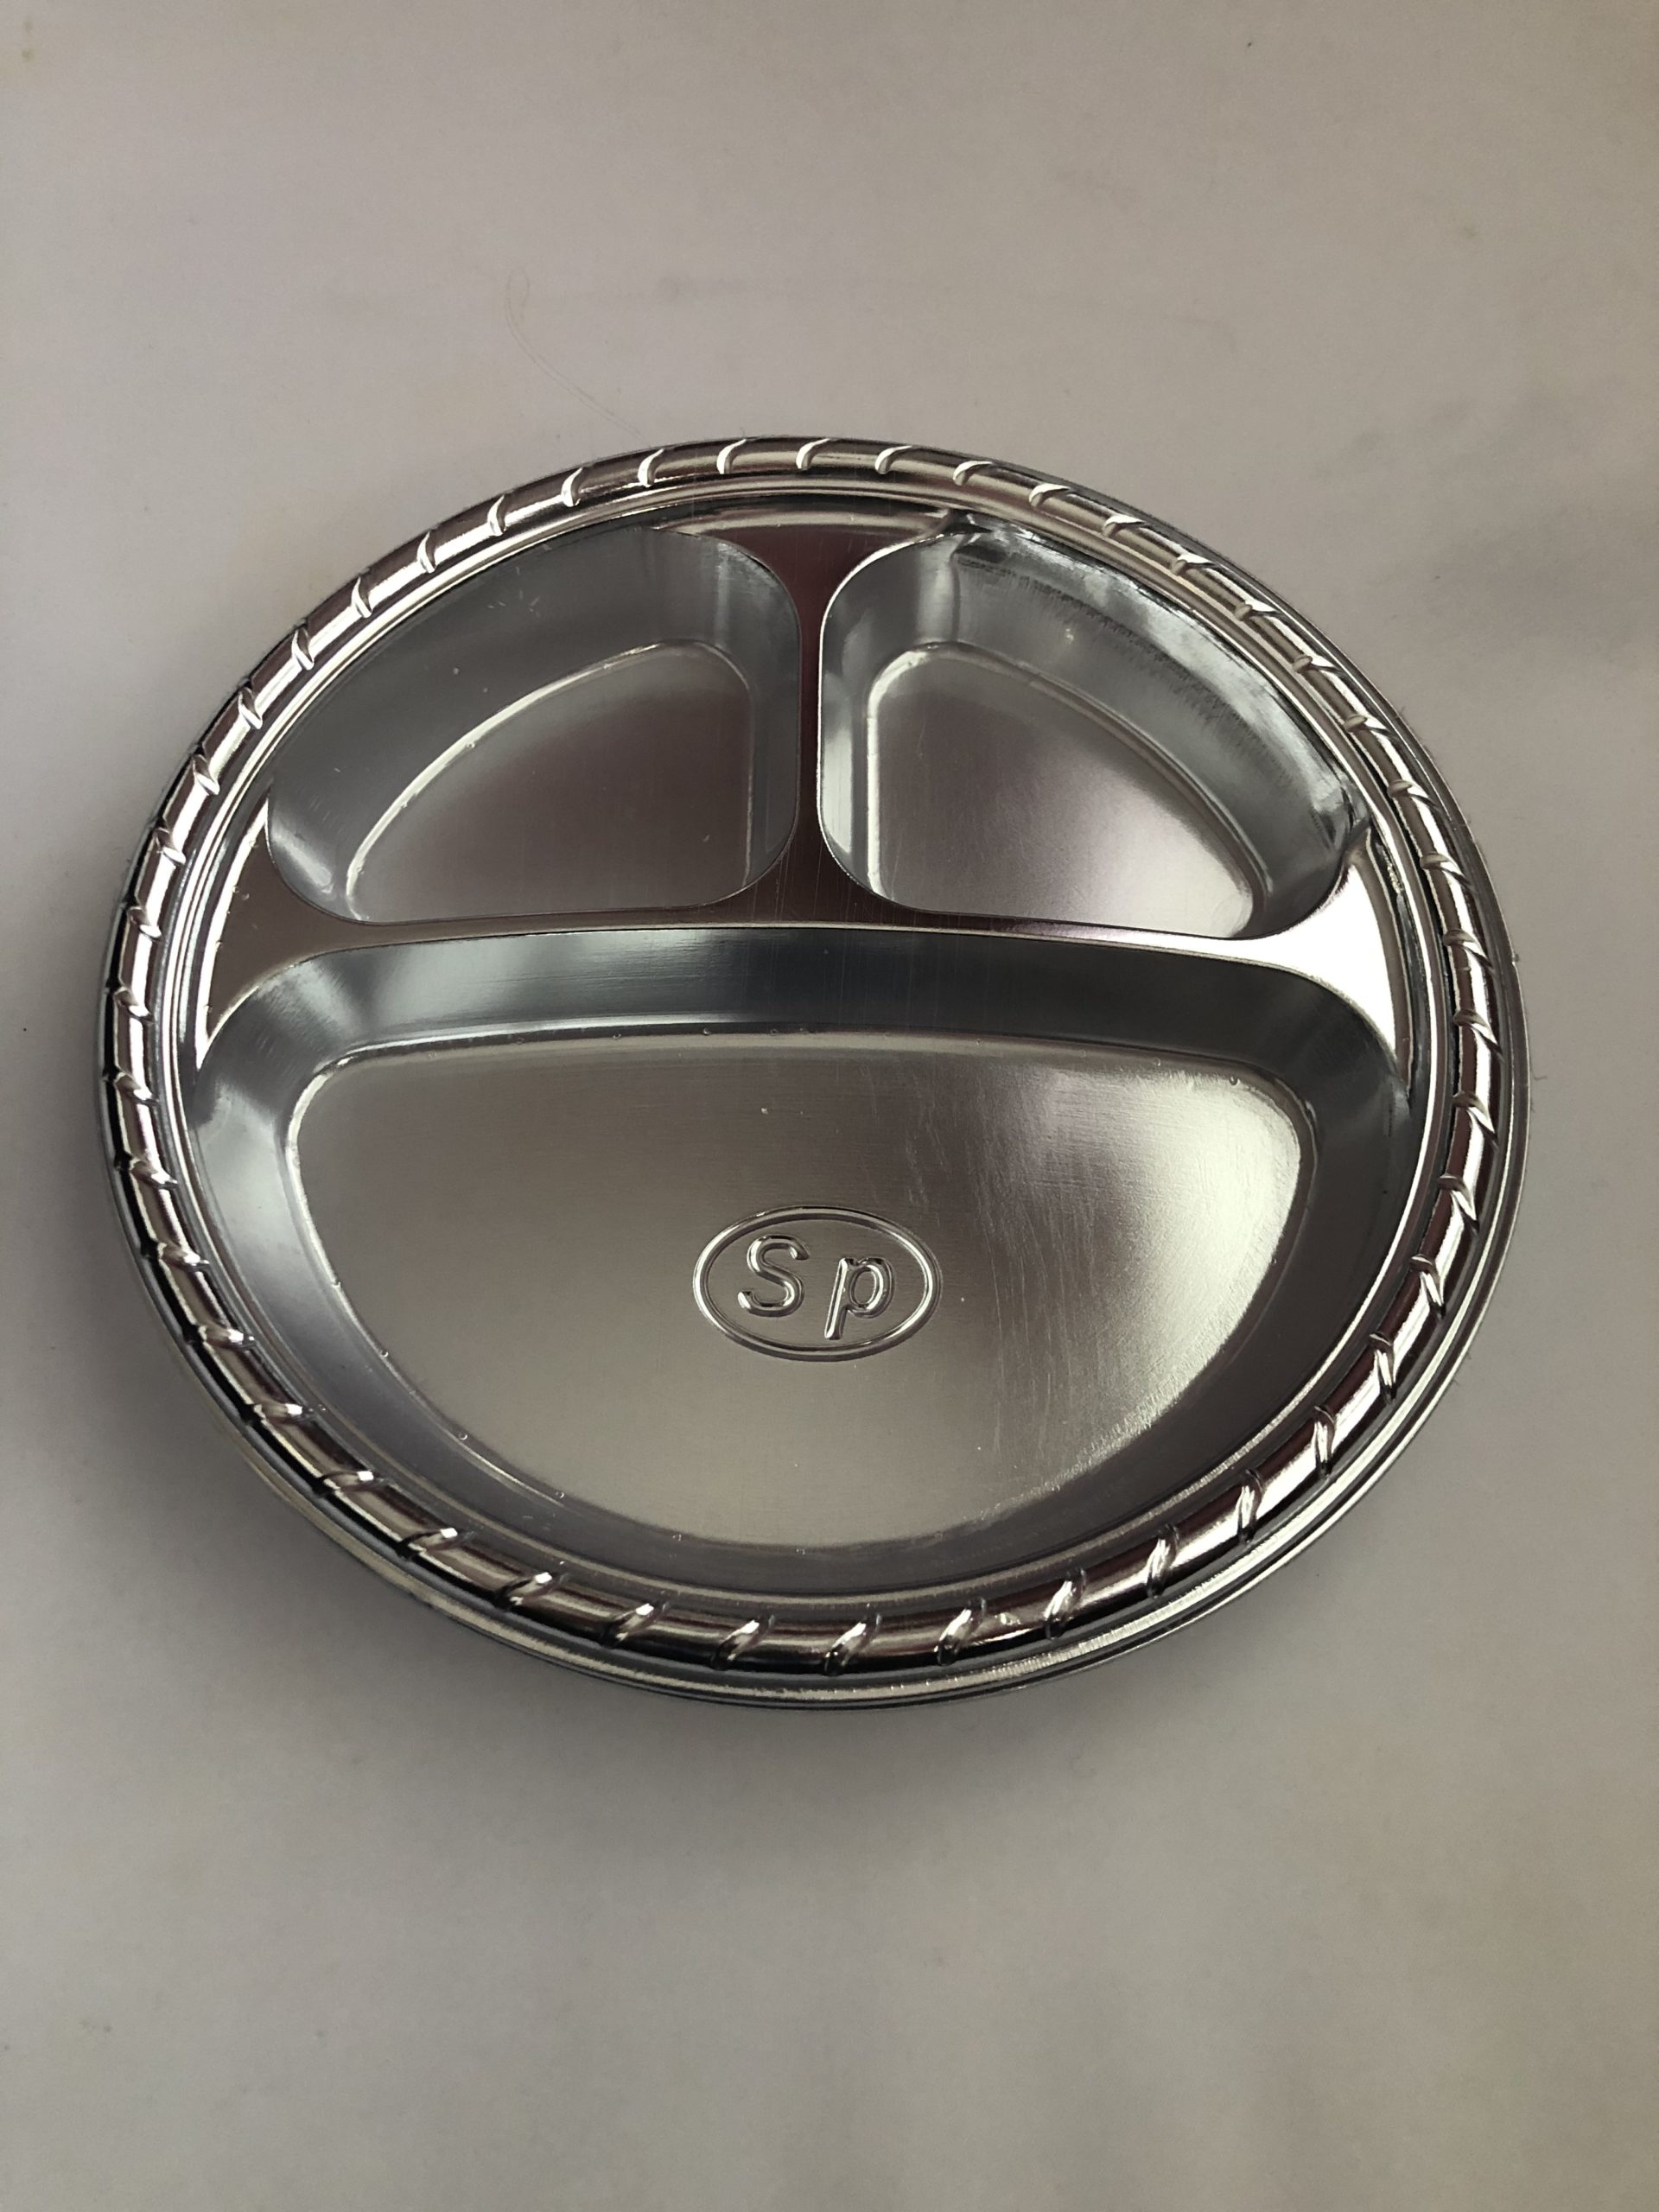 3 Section Silver Appetizer Plates with Cup Holder